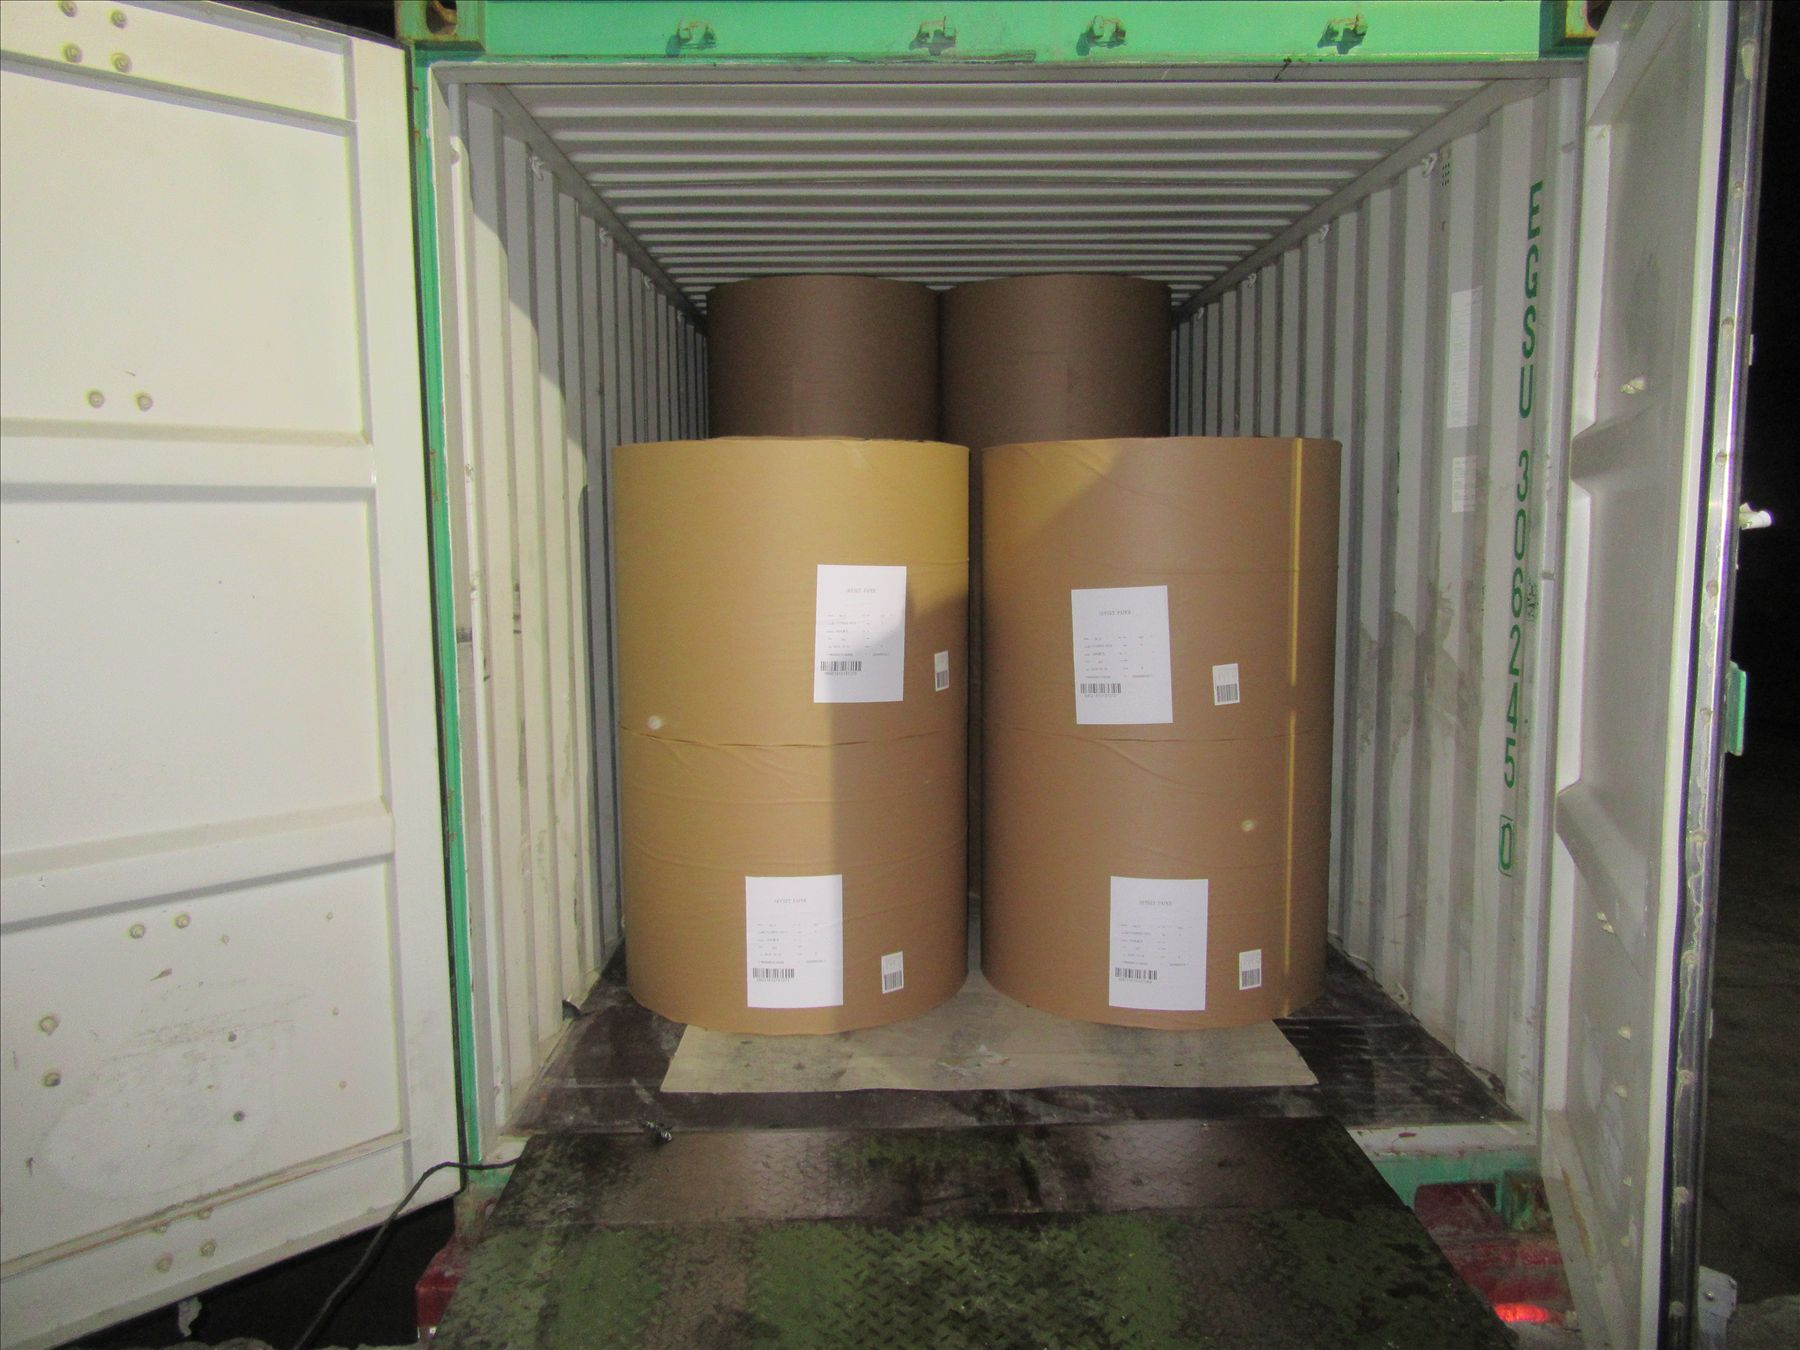 PROFESSIONAL LOADING SKILL TO LOAD PAPER ROLL INTO CONTAINER